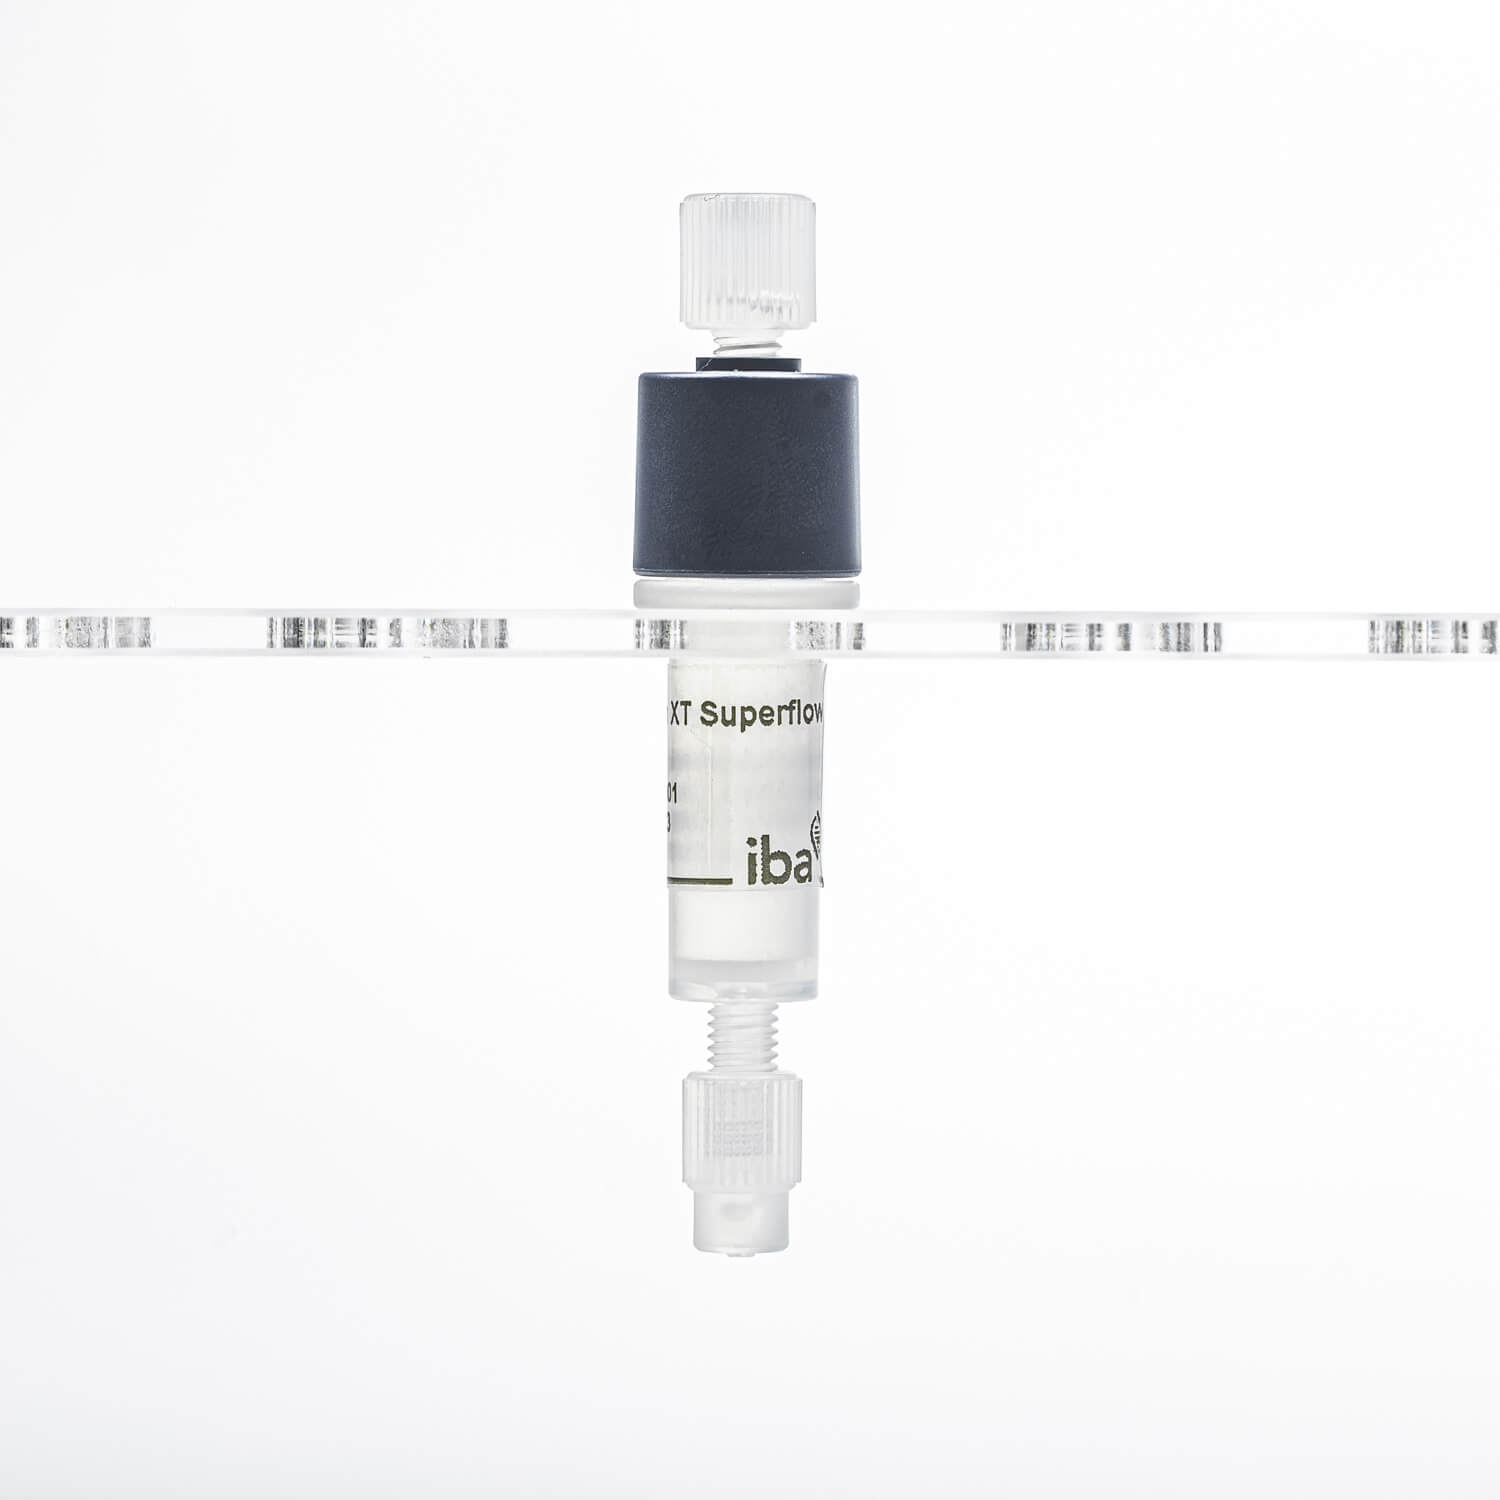 Strep-Tactin®XT Superflow® cartridge